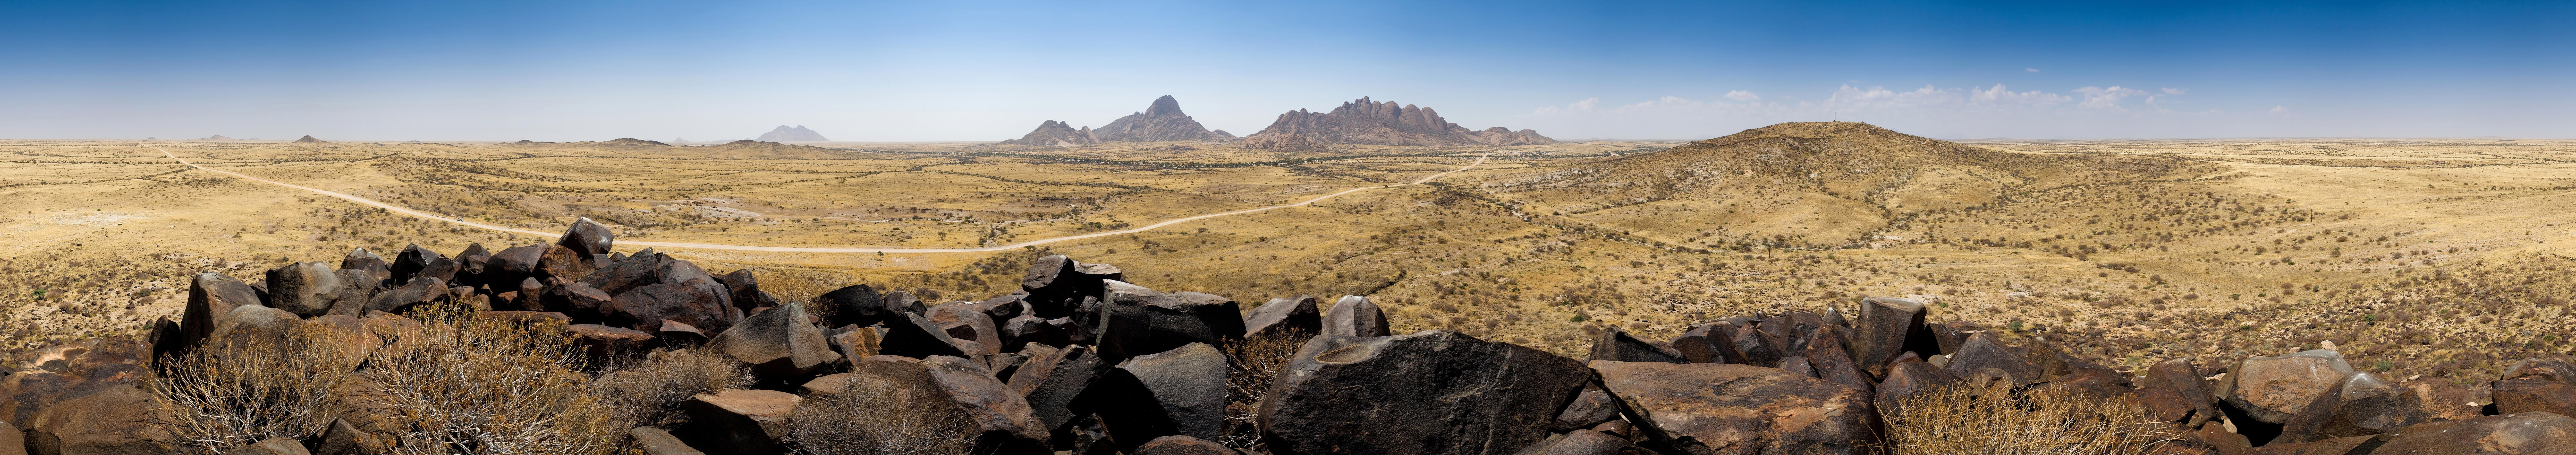 File:Spitzkoppe 360 Panorama.jpg